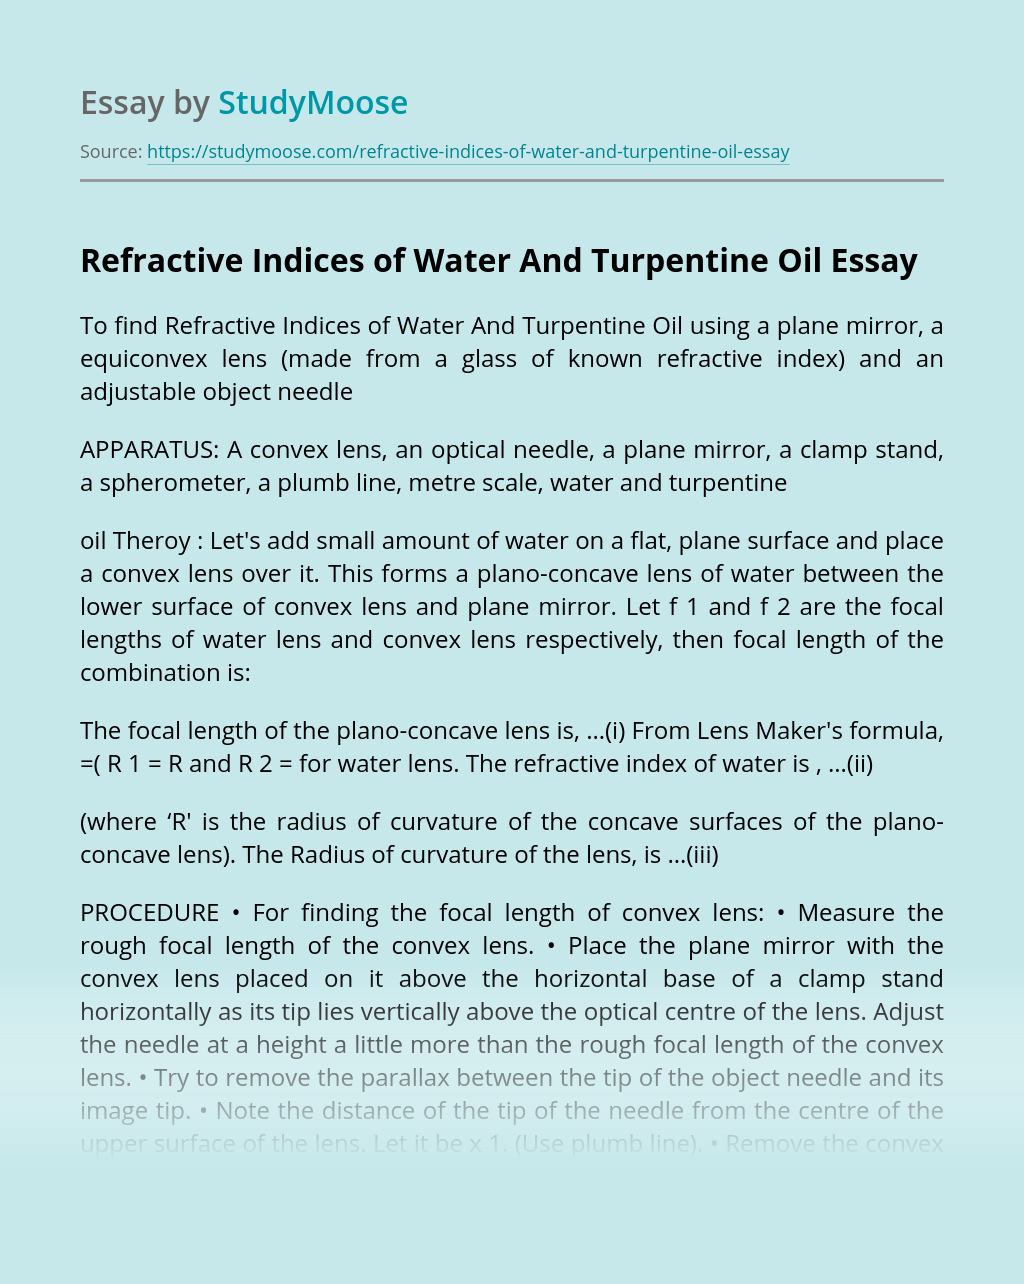 Refractive Indices of Water And Turpentine Oil